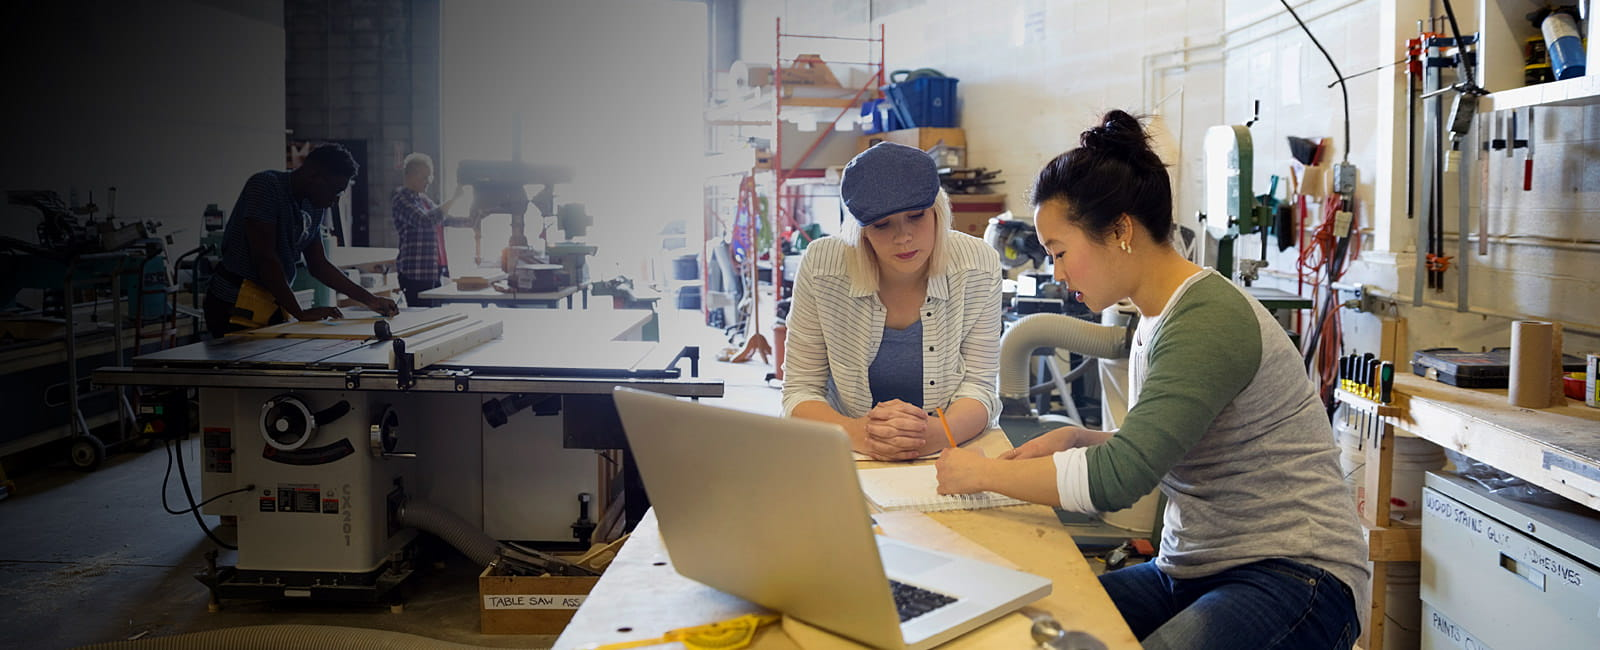 Two women business owners work on a laptop in a manufacturing warehouse